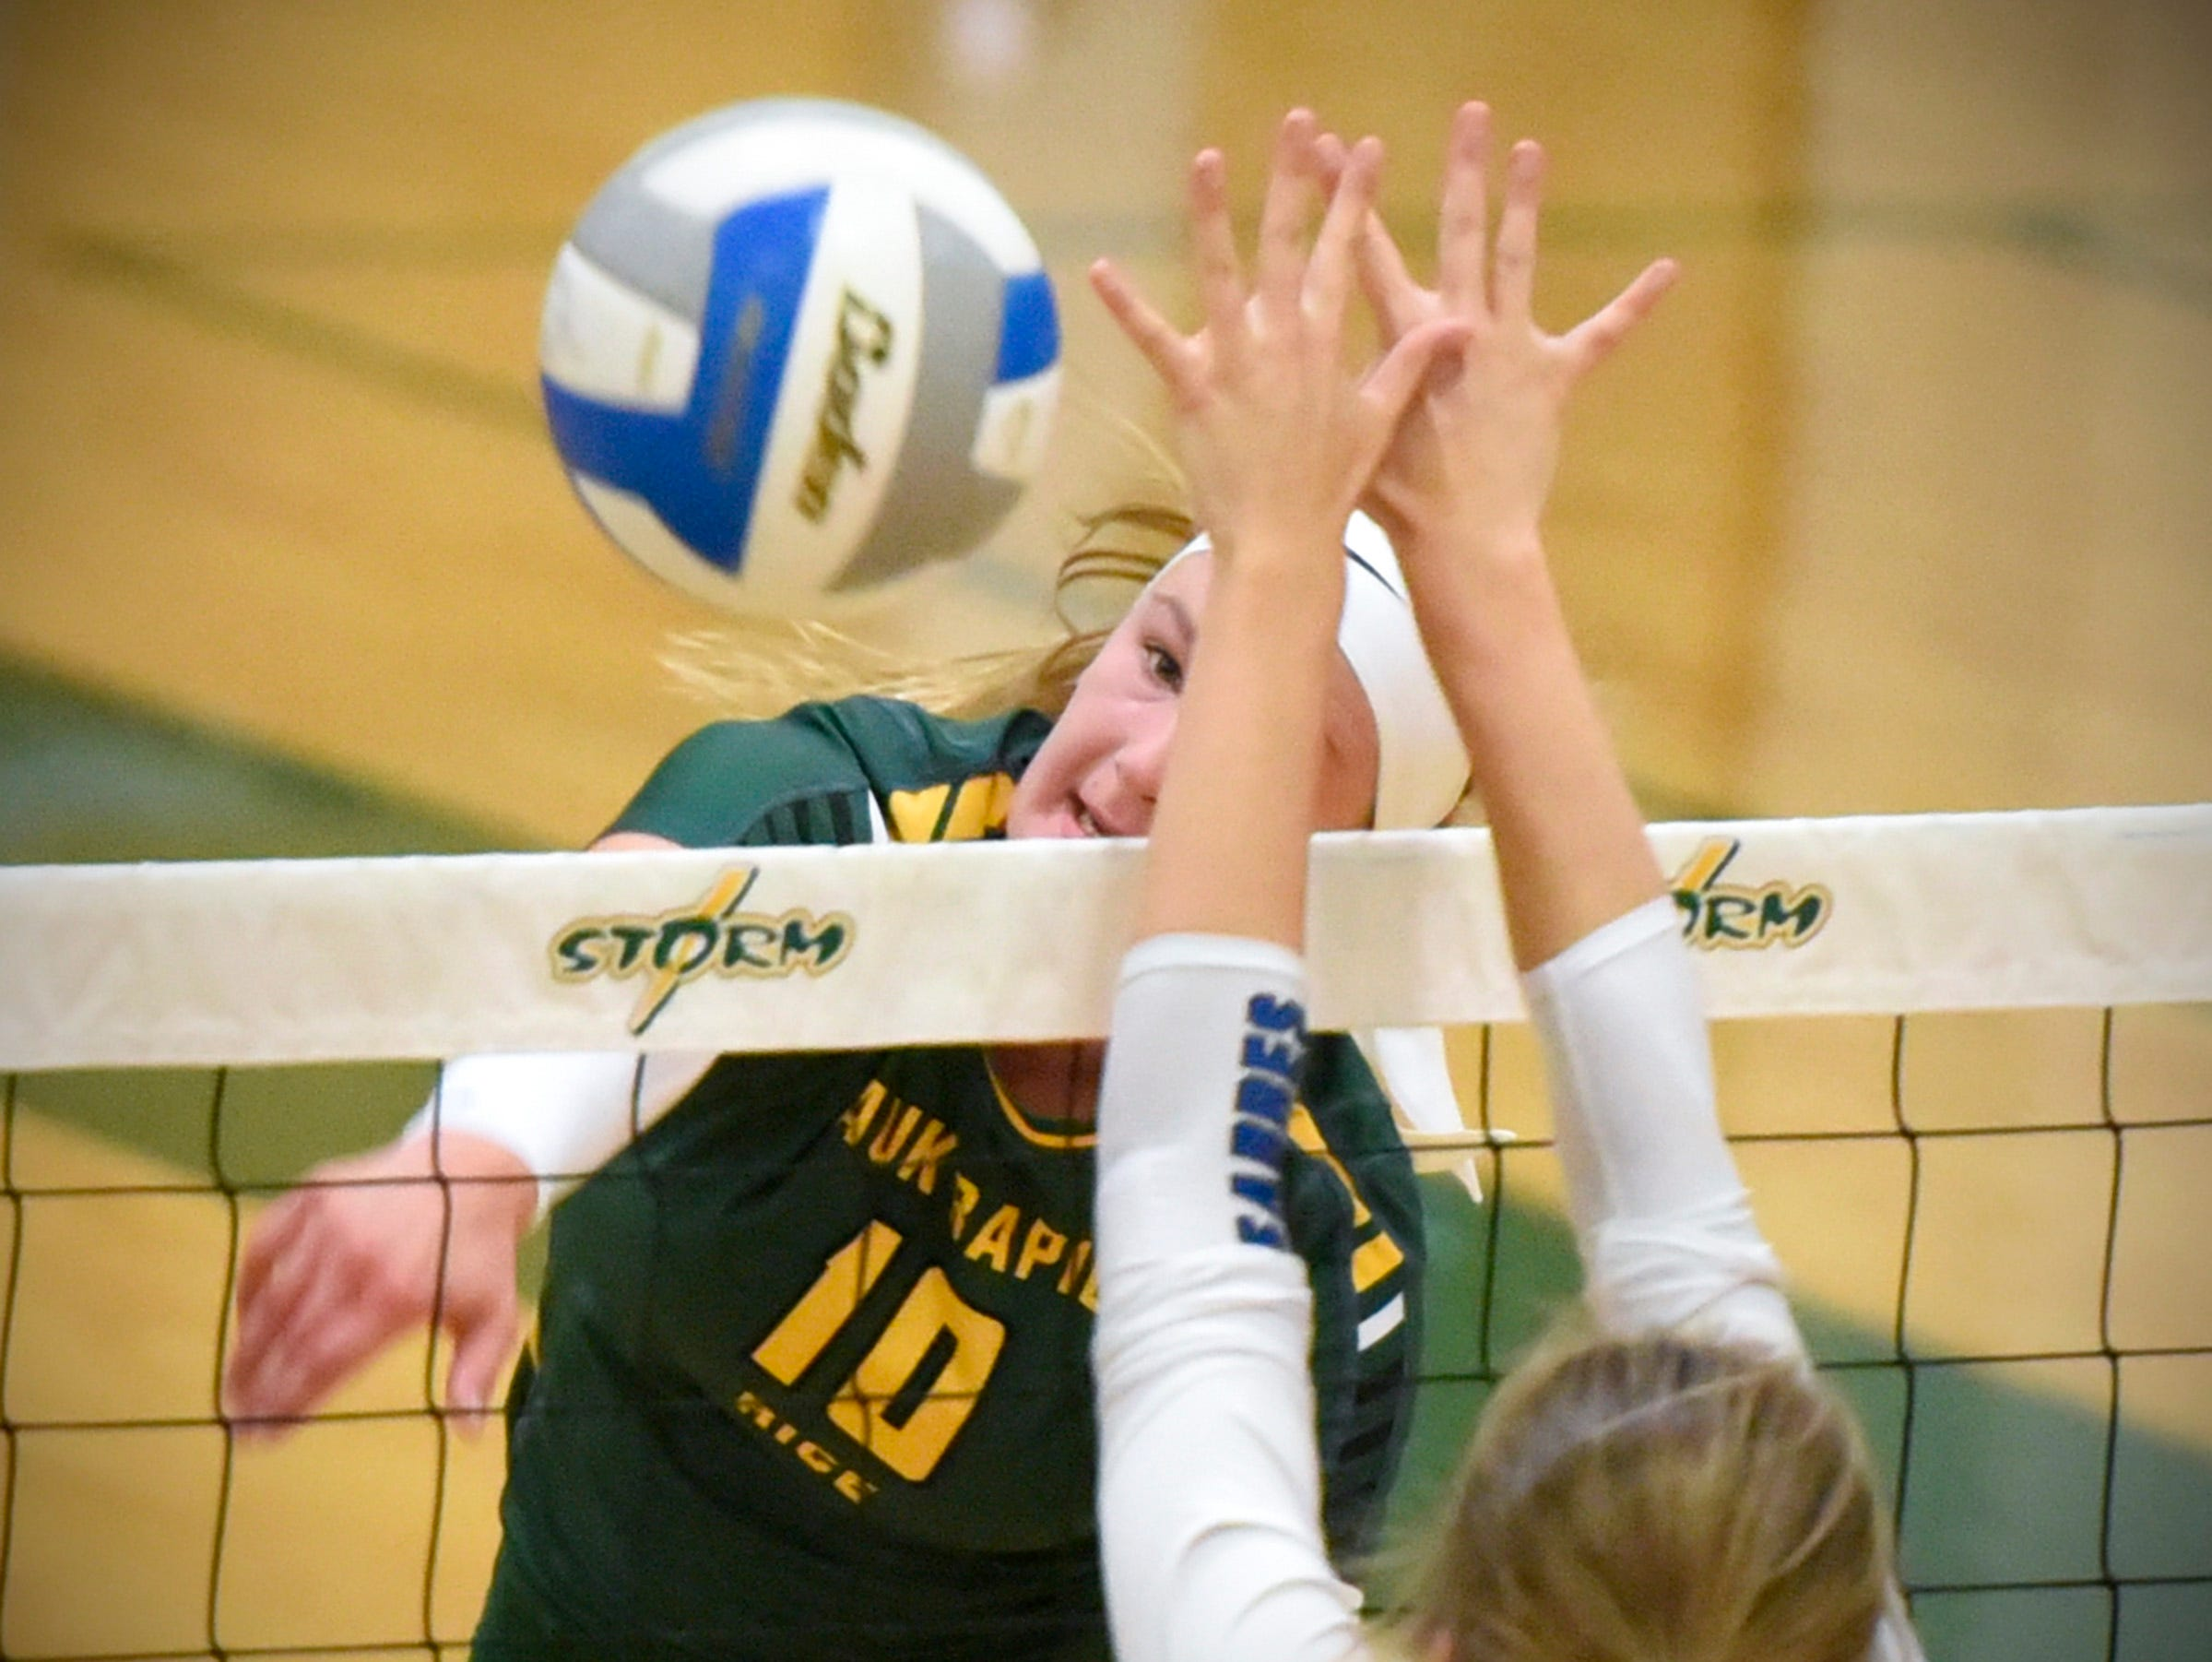 Sauk Rapids' Morgan Maselter spikes the ball over the net against Sartell during the first game Thursday, Sept. 13, at Sauk Rapids.